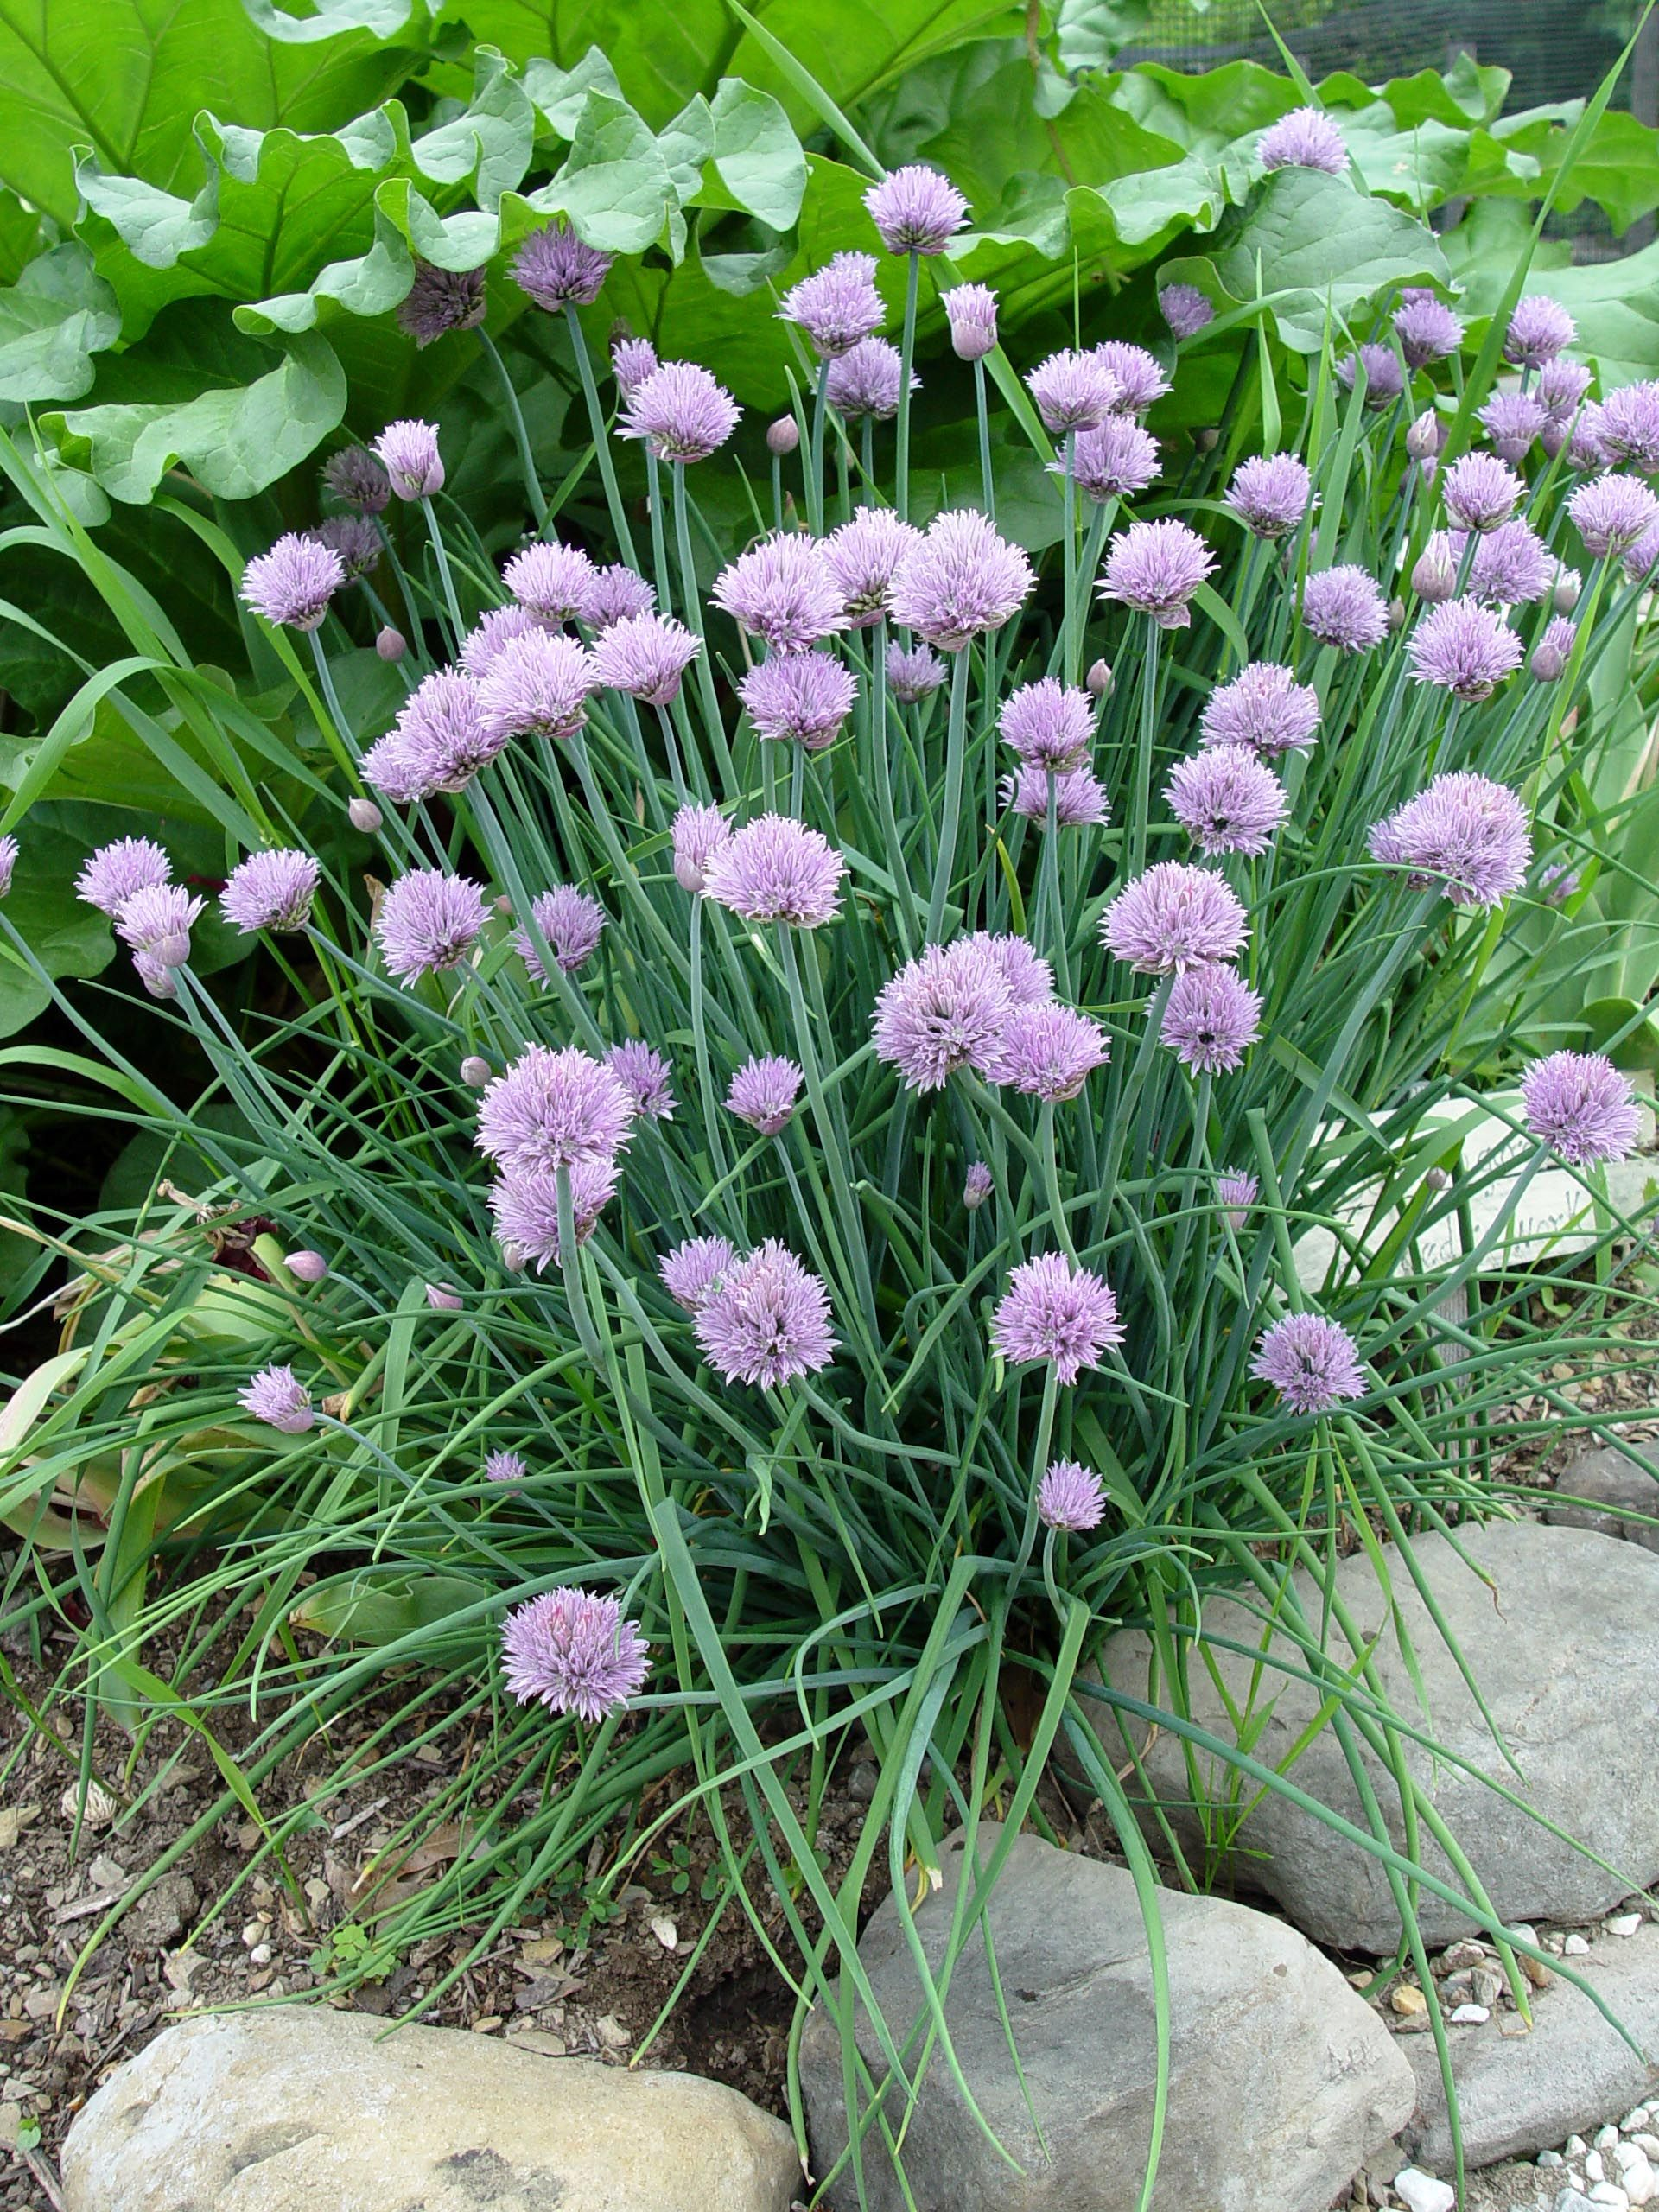 Onion Chives With Their Beautiful Purple Flowers Are Little Straws Of Mild Oniony Crunchiness And A Great Addition To Fo Chives Plant Chive Seeds Chives Garden